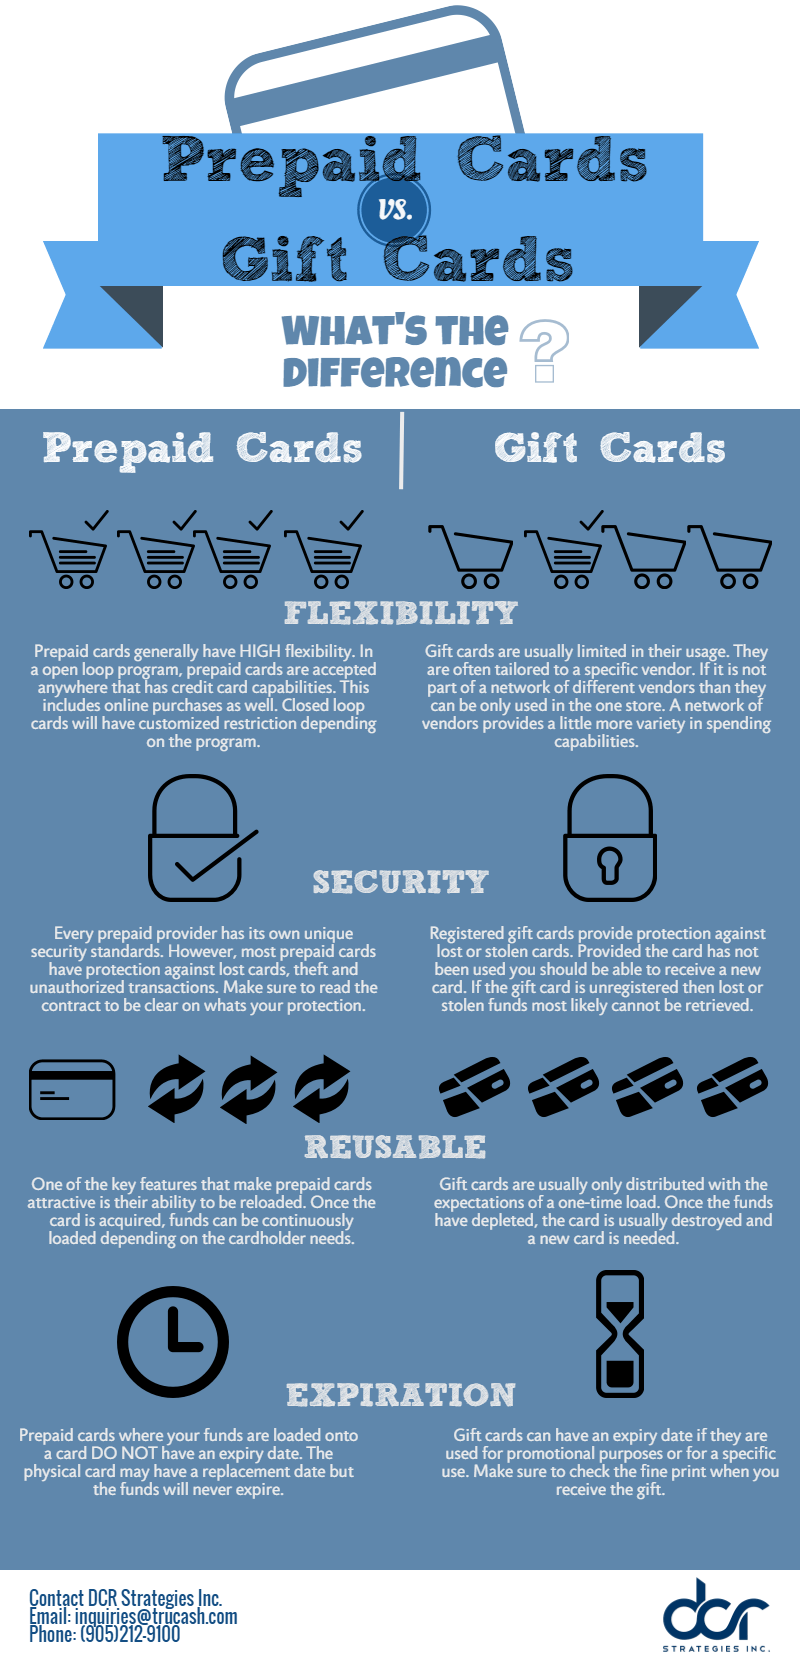 Prepaid Cards vs Gift Cards